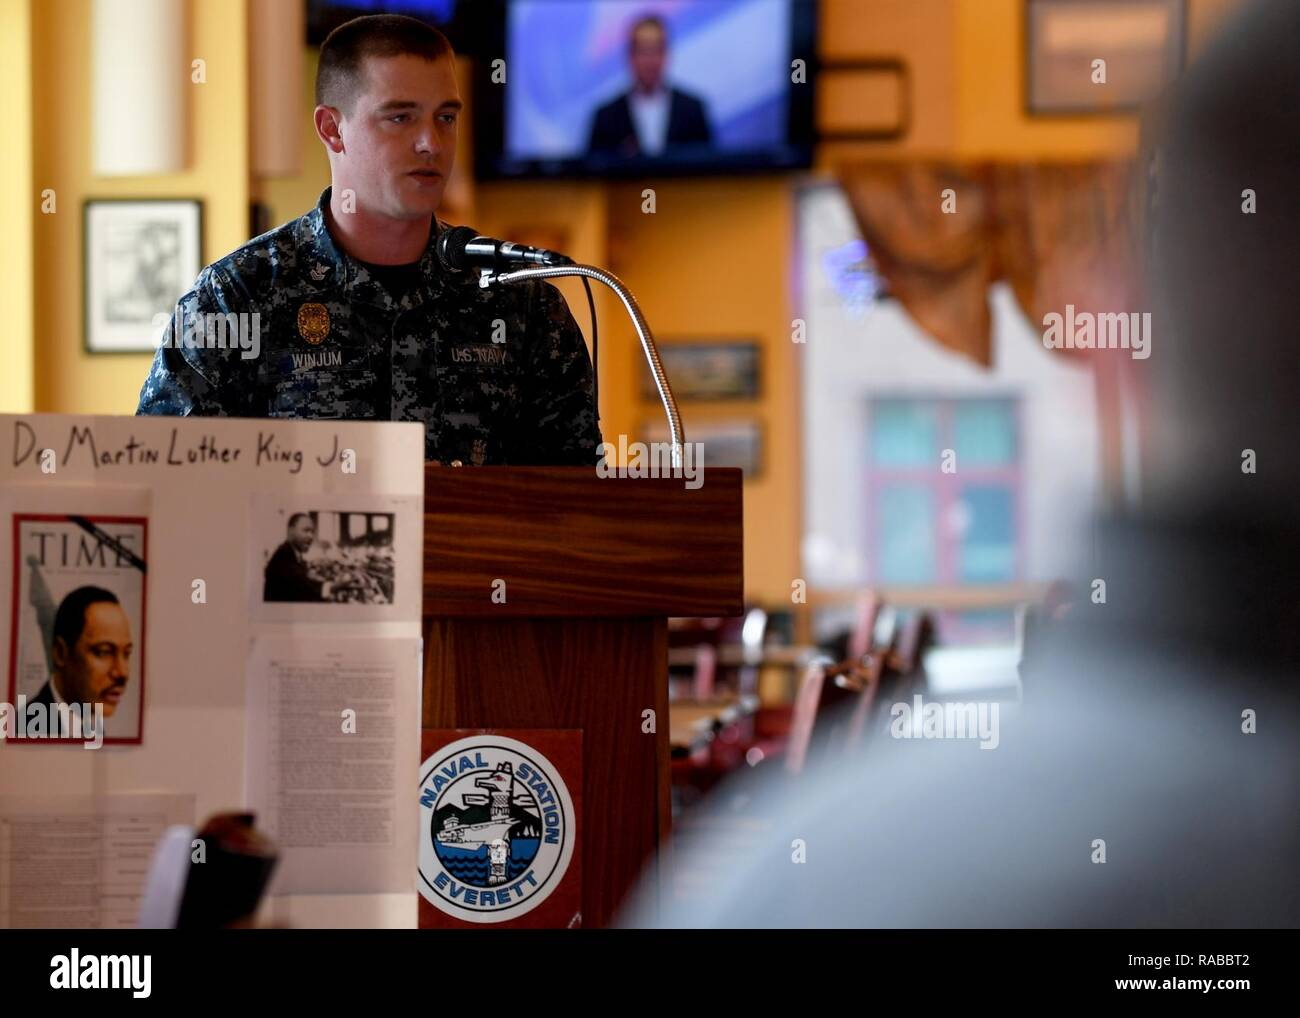 EVERETT, Wash. (Jan. 13, 2017)  Master-at-Arms 1st Class John Winjum, assigned to Naval Station Everett (NSE) Security Forces, speaks at a Martin Luther King Jr. Day remembrance ceremony at the All-American Restaurant on base. Dr. King was a civil rights activist who worked to end racial segregation in the United States. - Stock Image